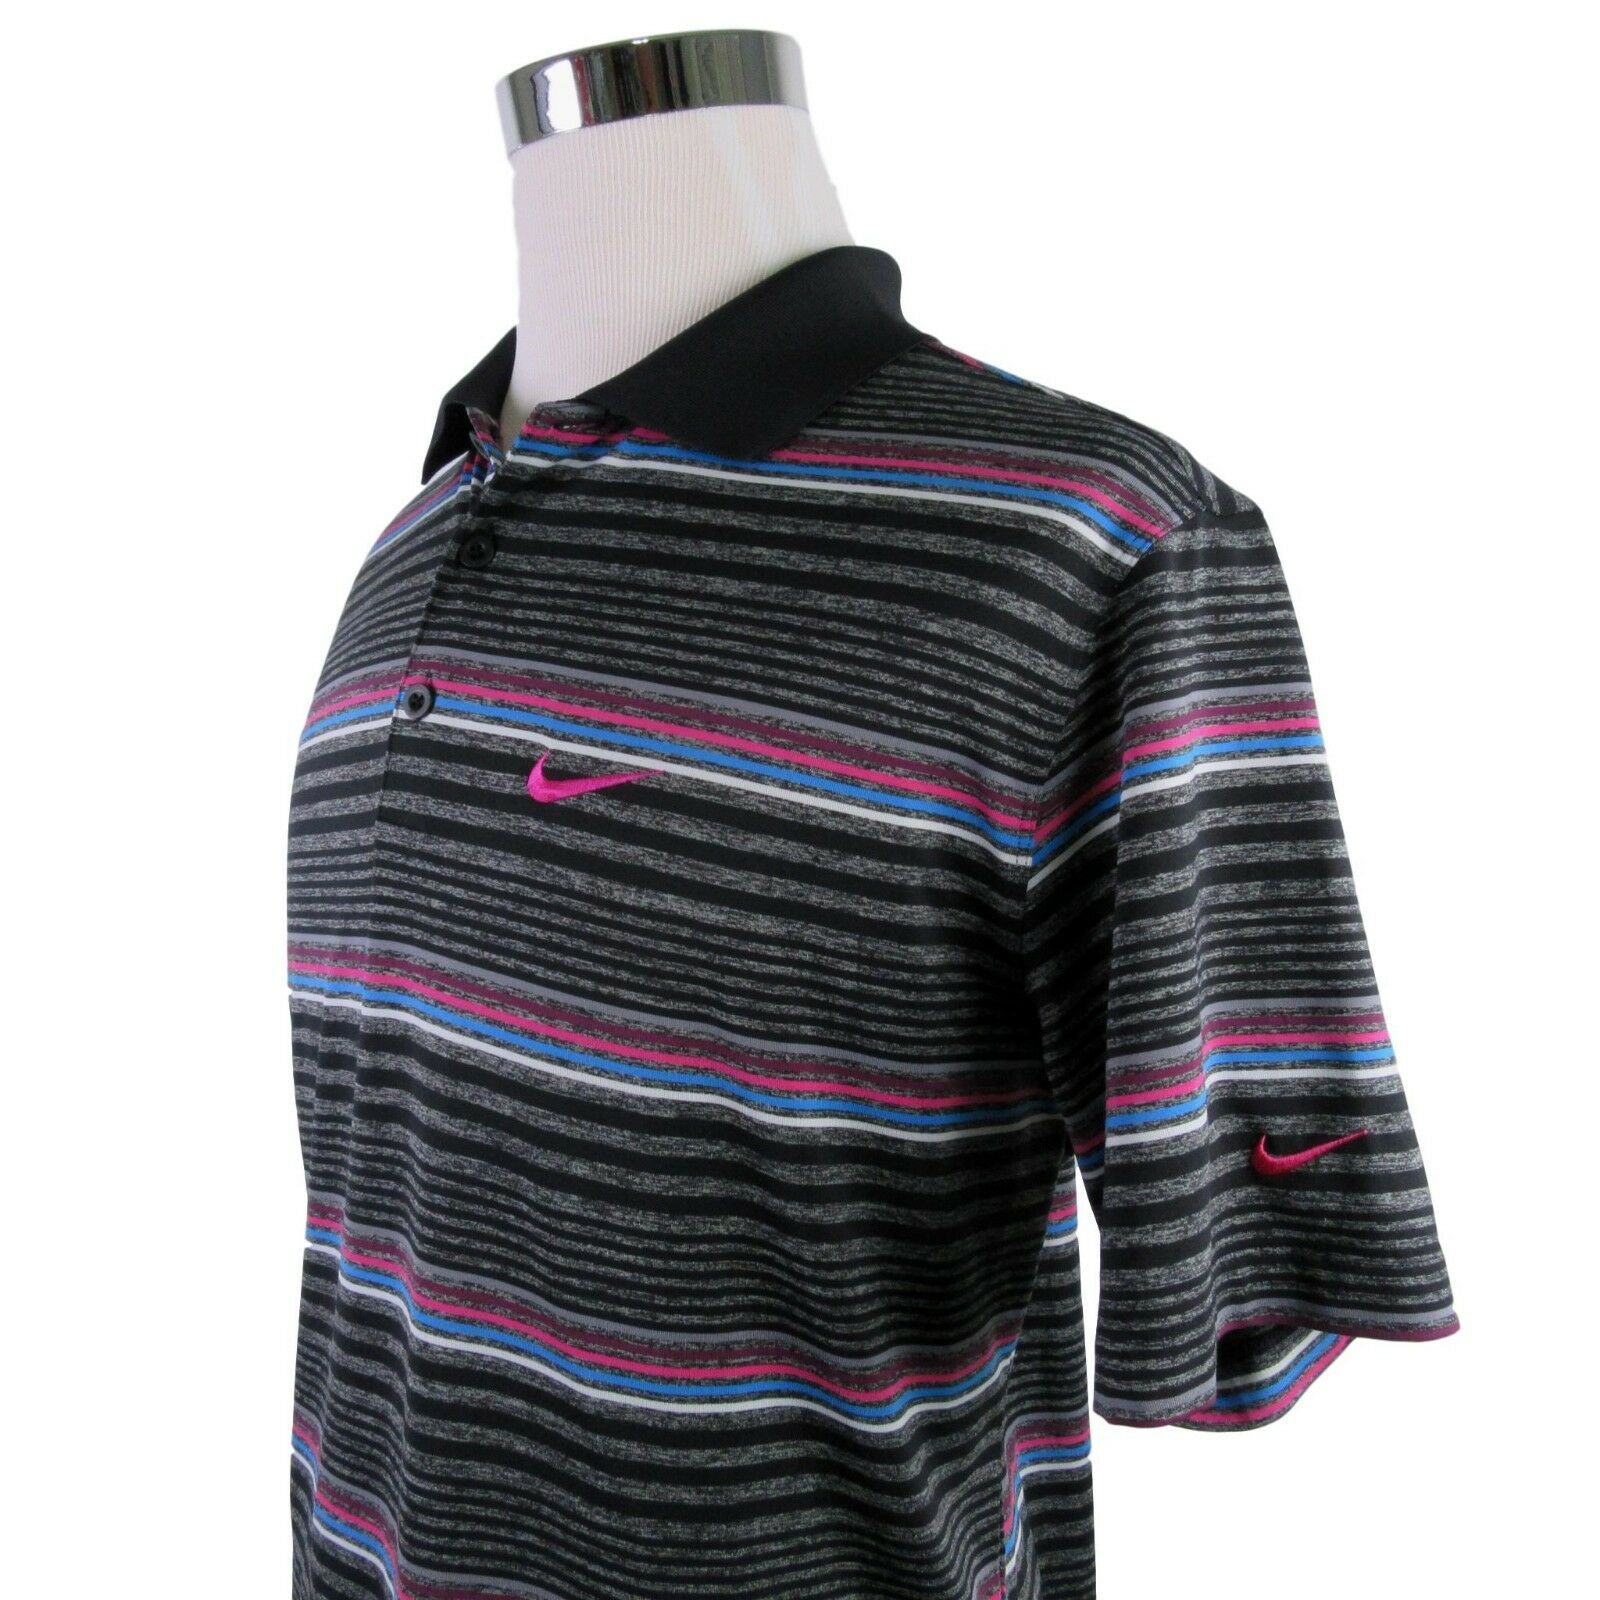 2d9346bf72d1 Nike Golf Tour Performance Polo Shirt Size and 50 similar items. 57